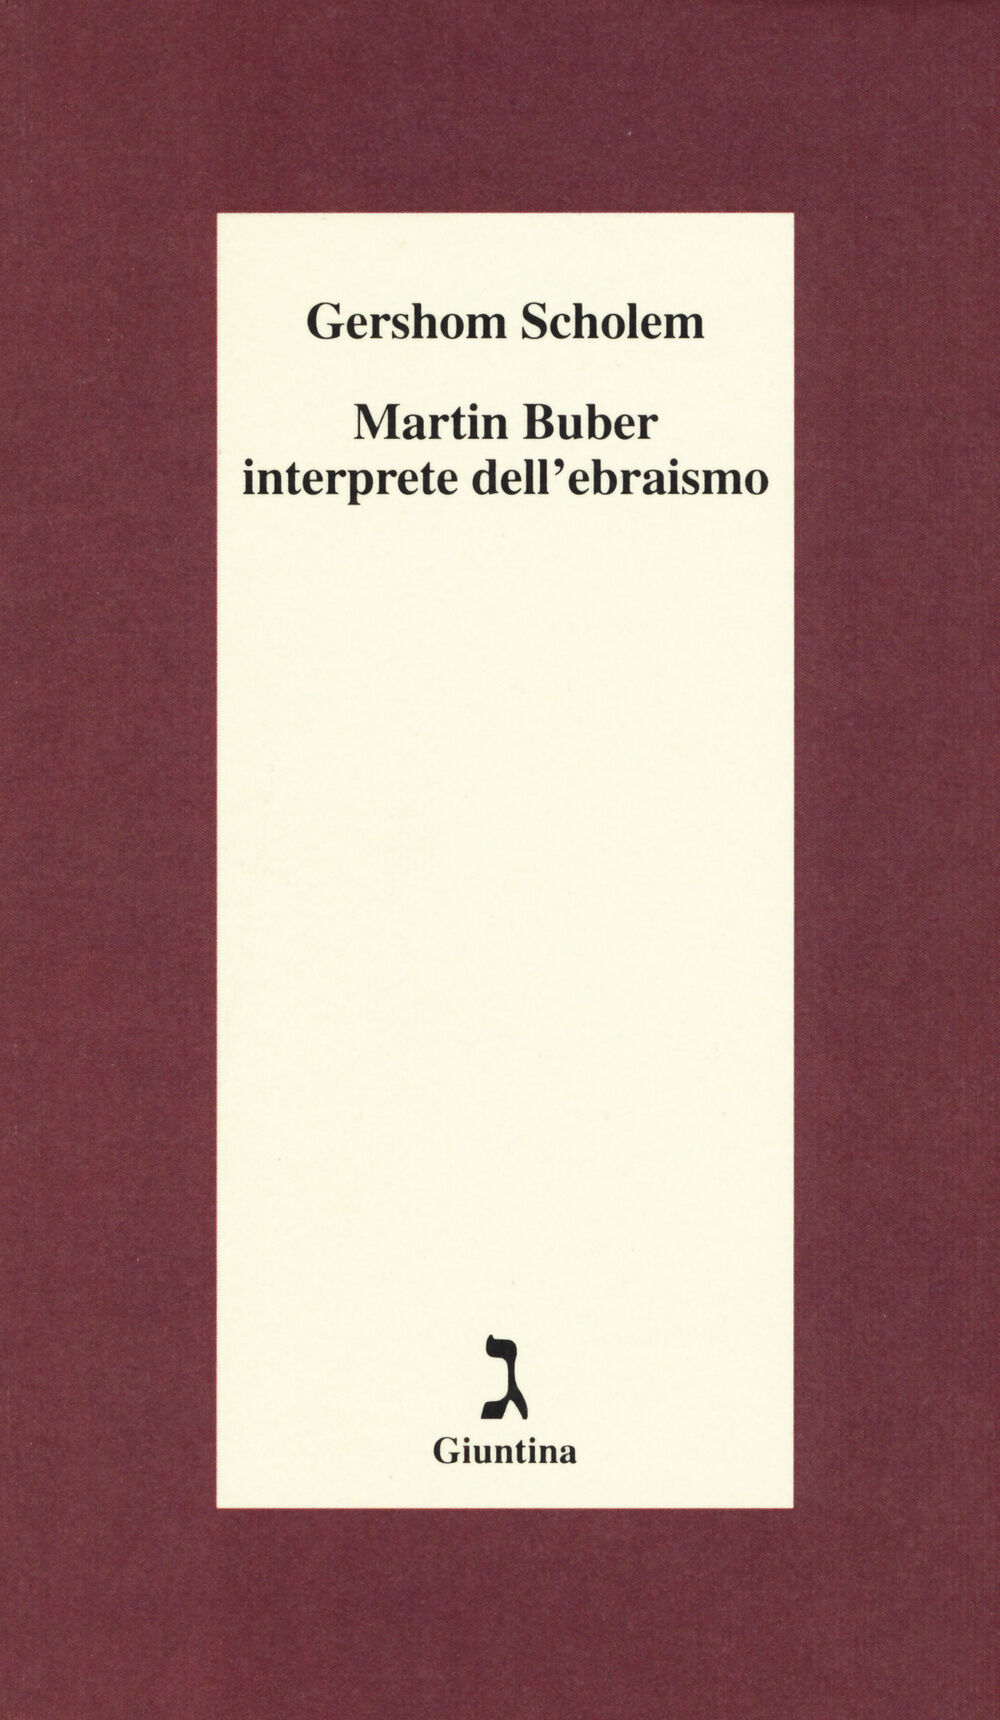 Martin Buber interprete dell'ebraismo